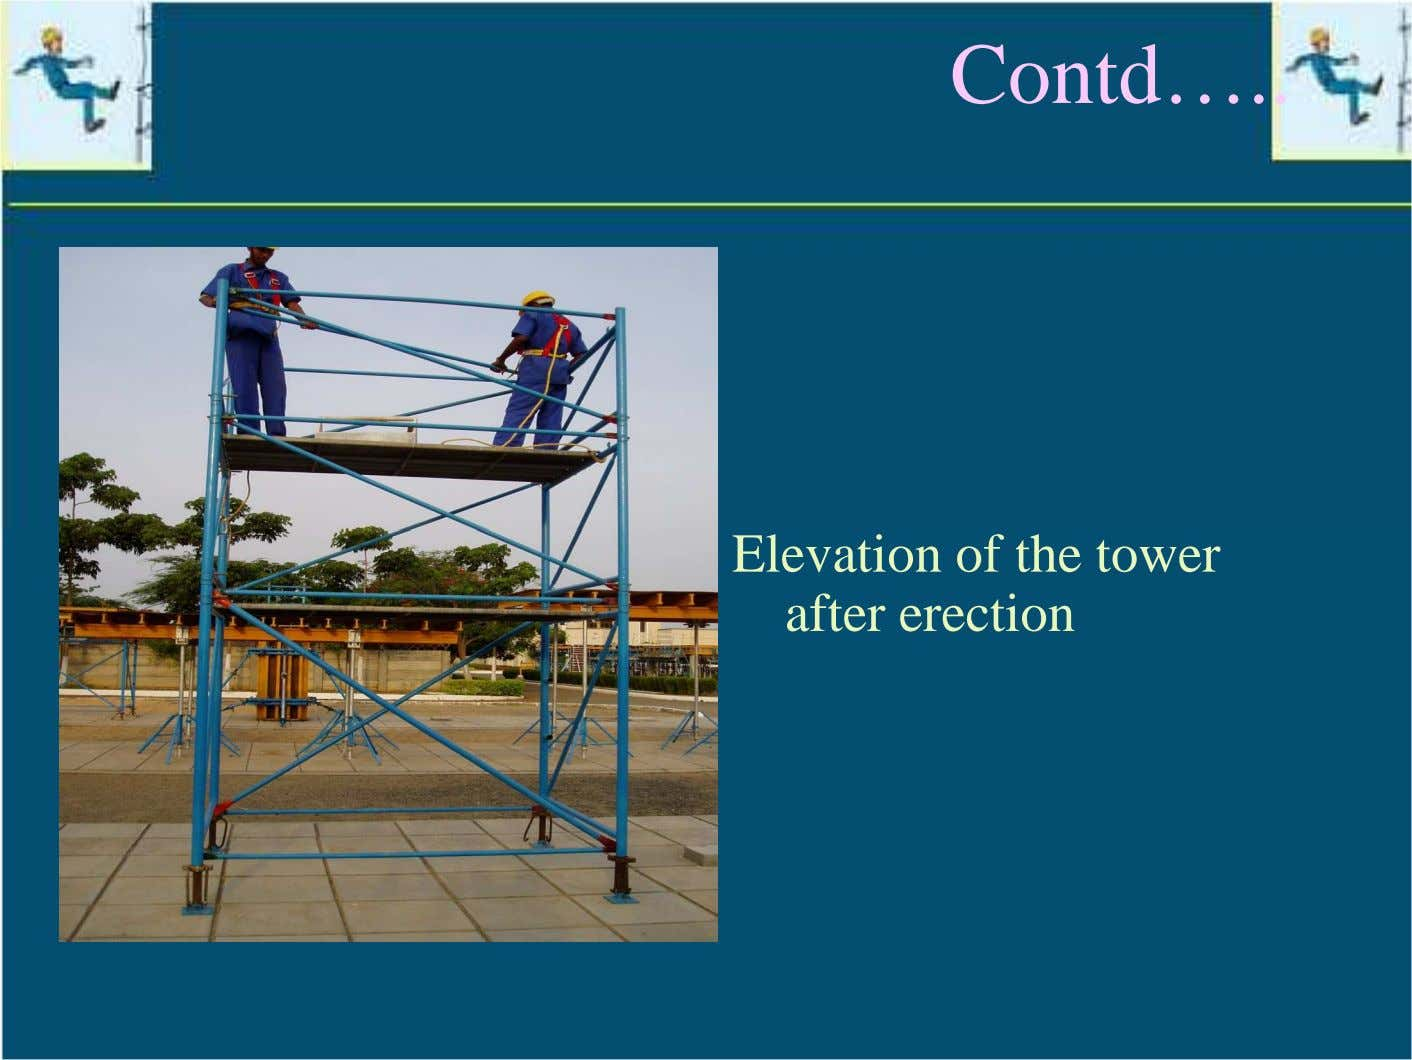 Contd… Elevation of the tower after erection